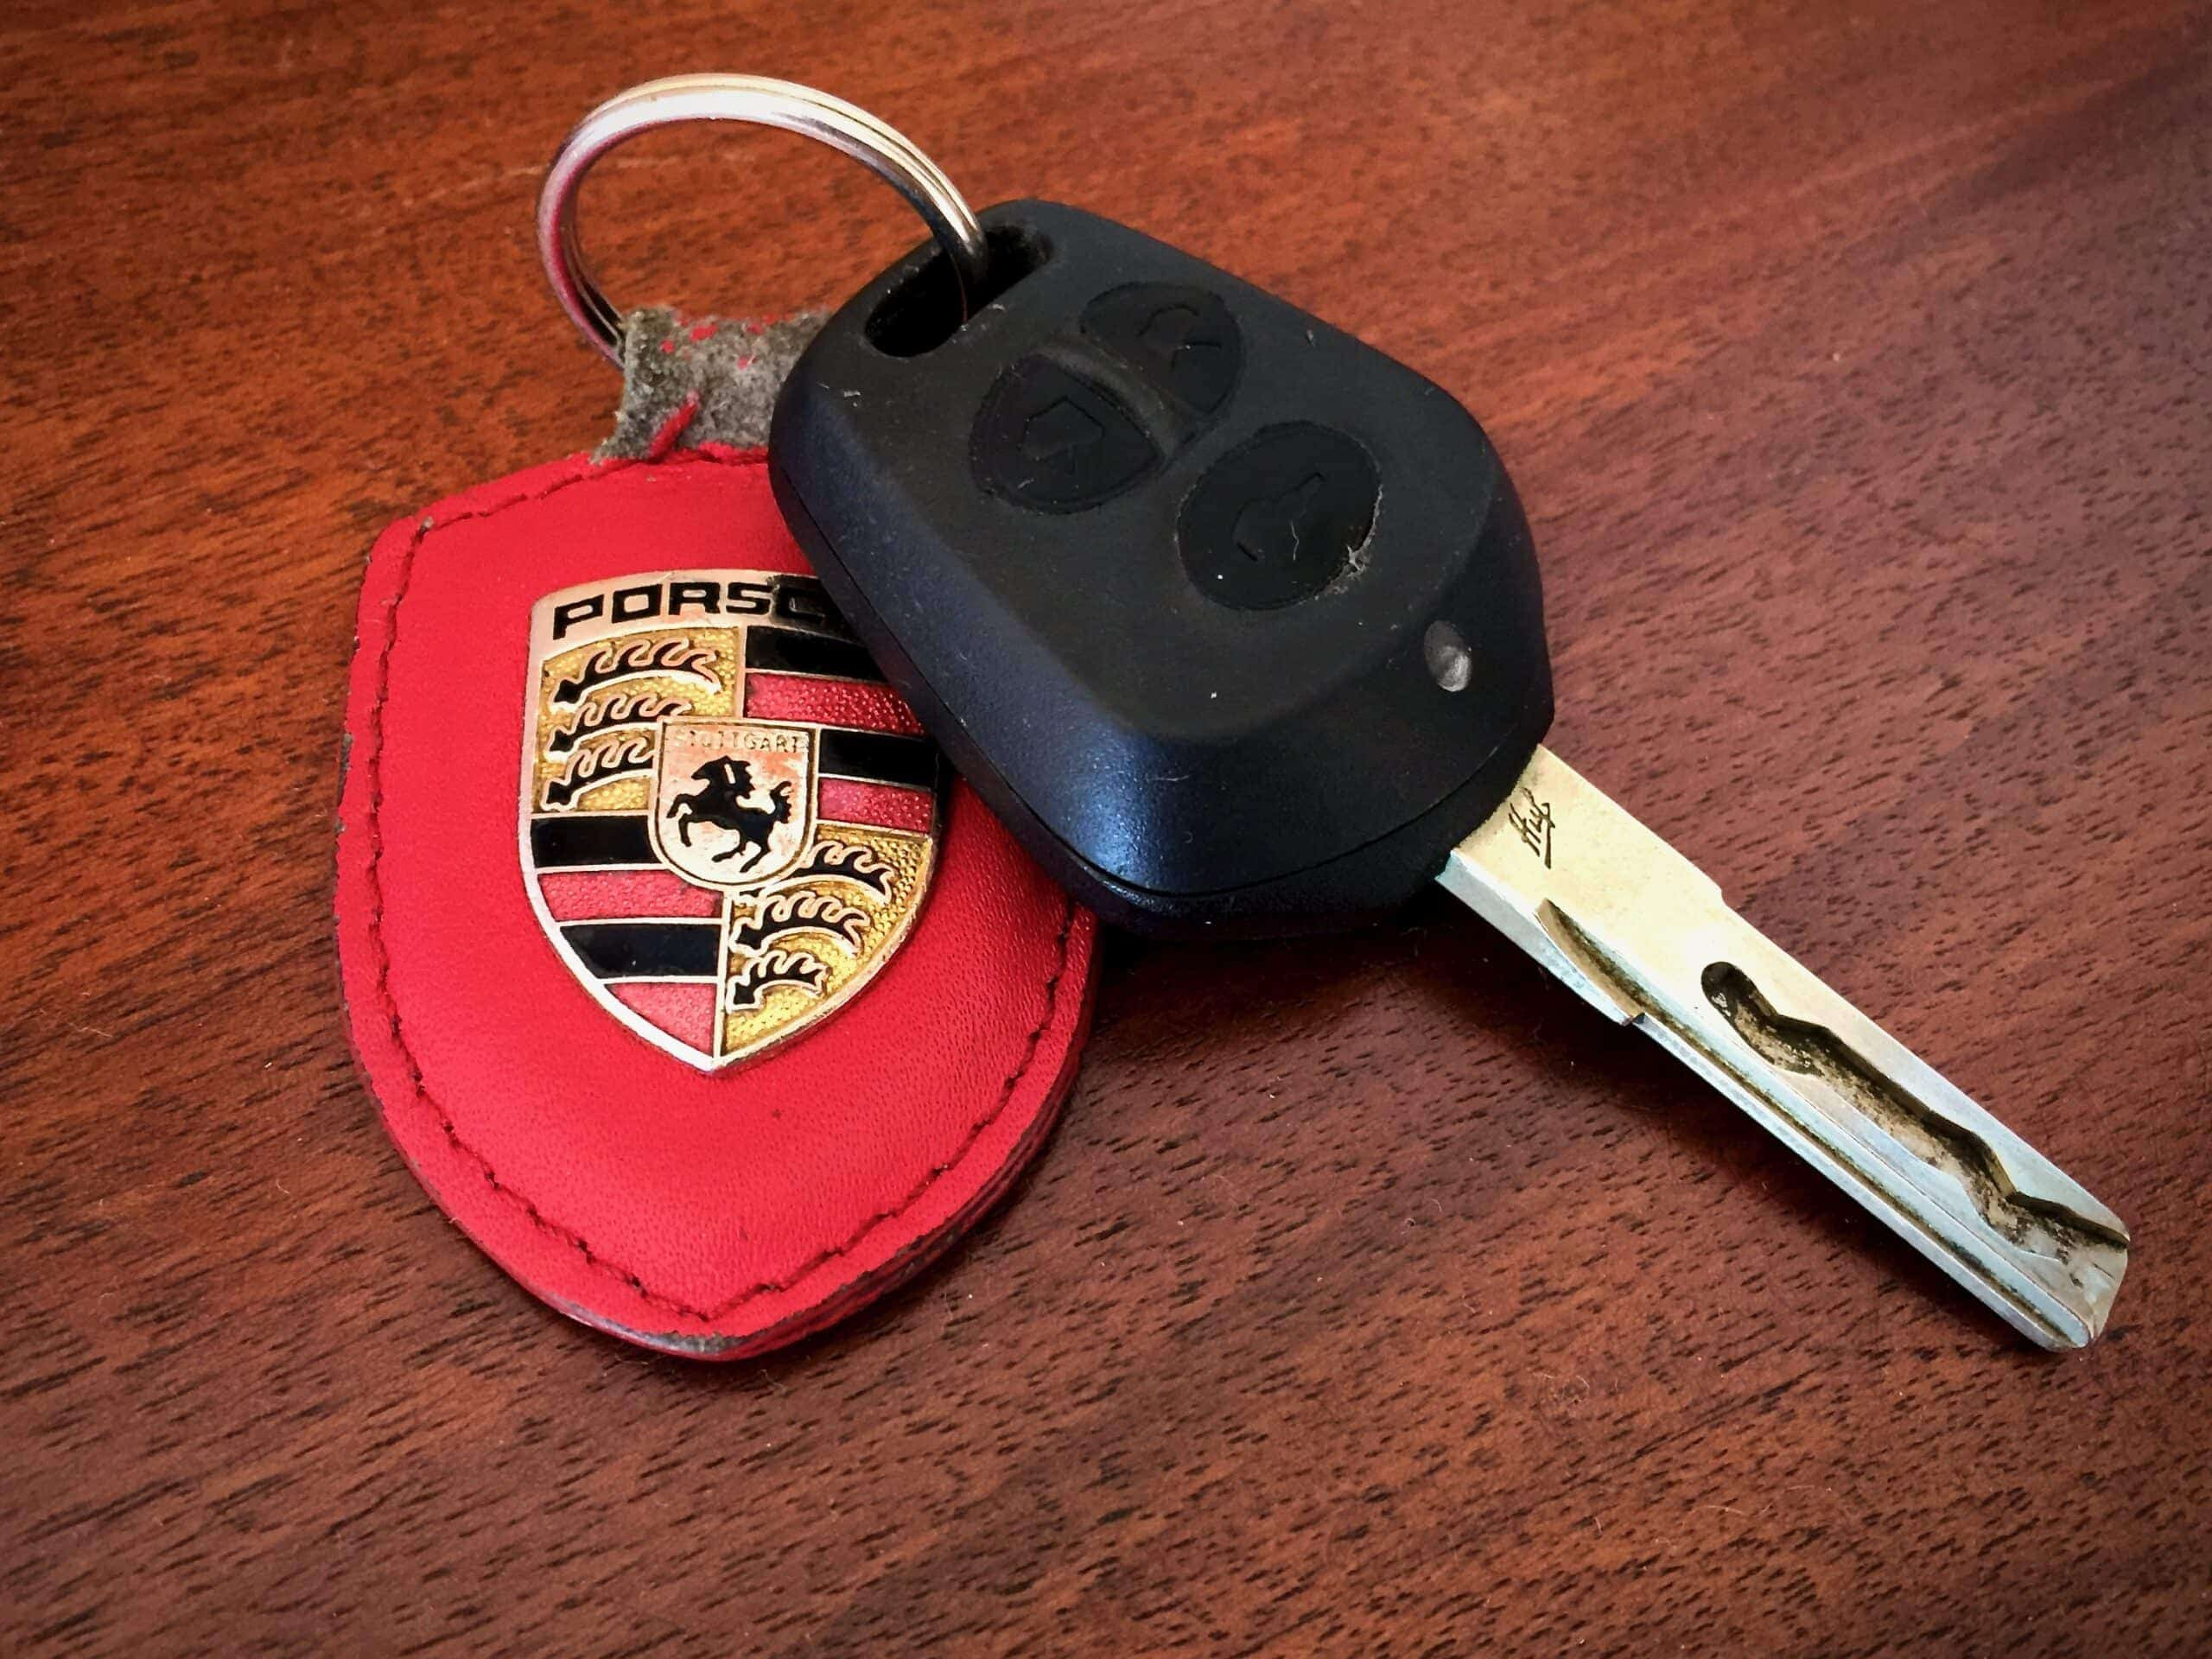 986 Boxster key fob and ring